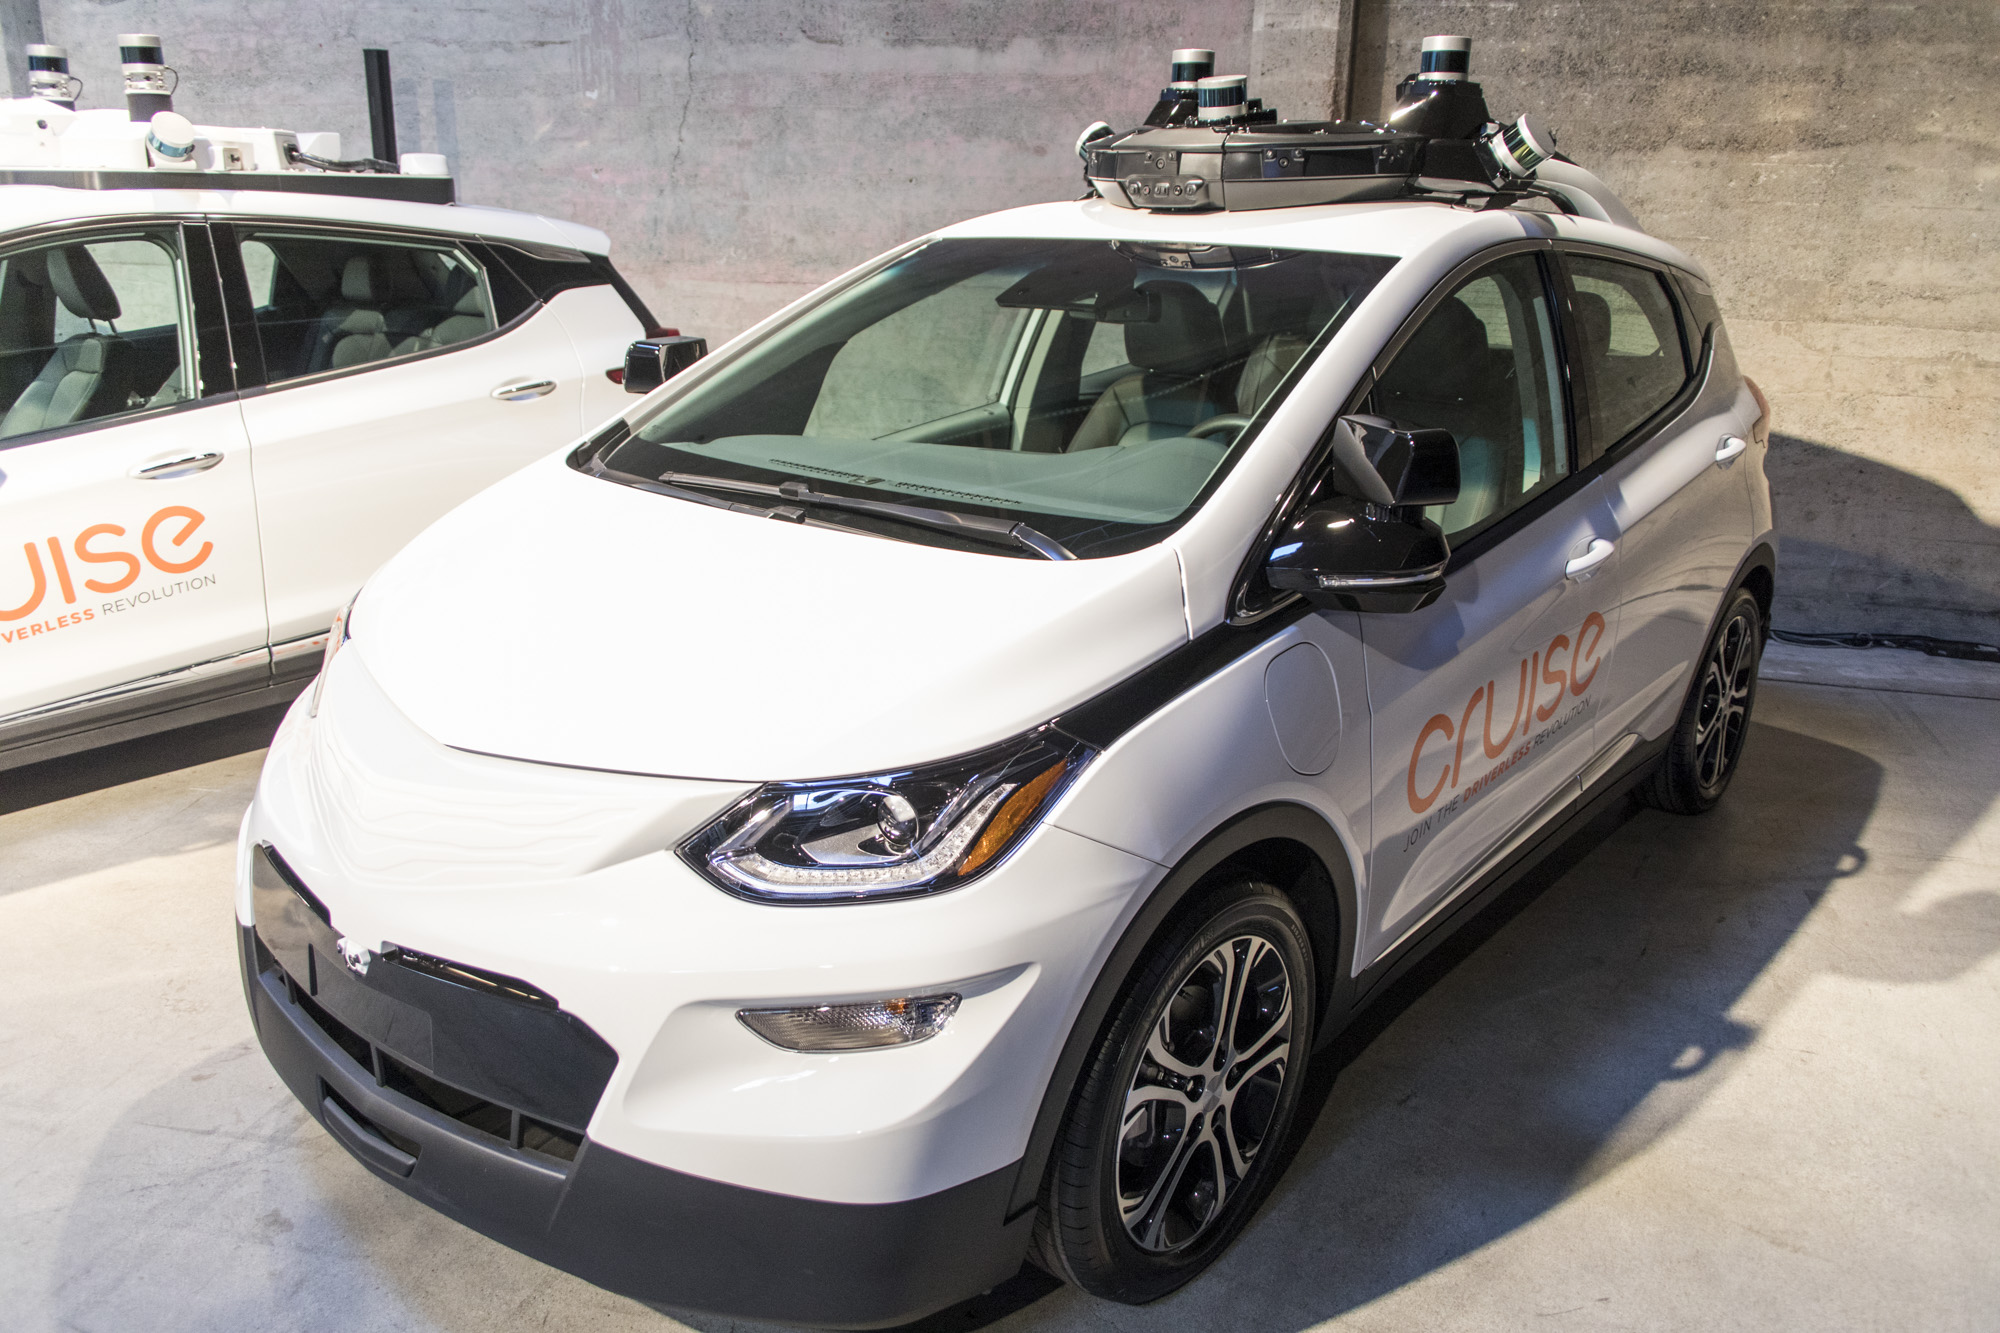 Arizona governor suspends Uber's ability to test self-driving cars